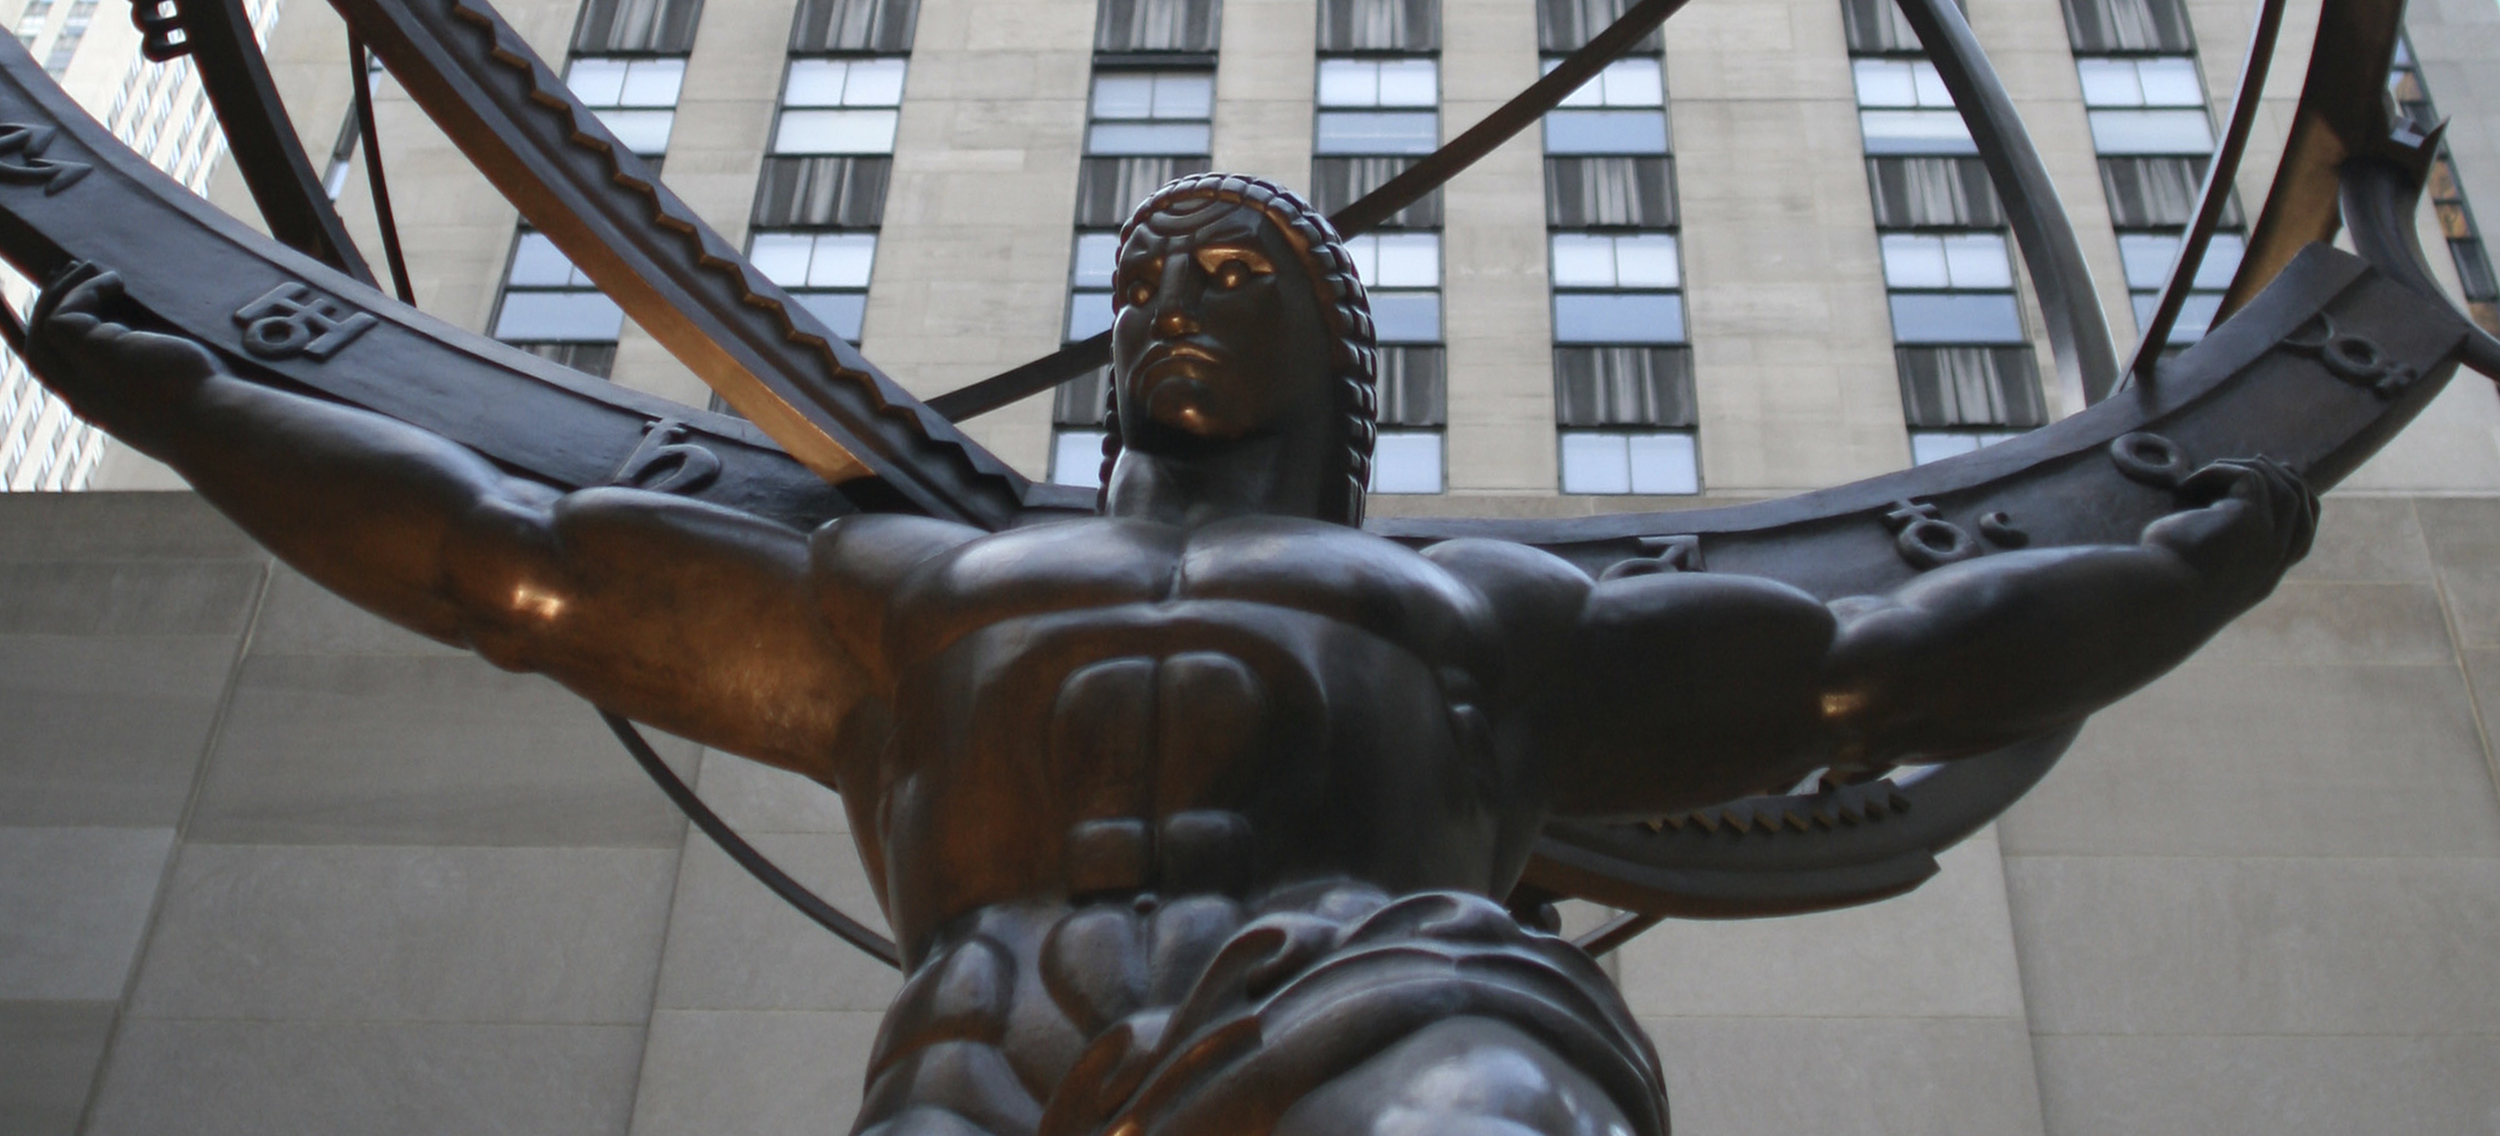 Statue of Atlas outside The Rockefeller Center in New York